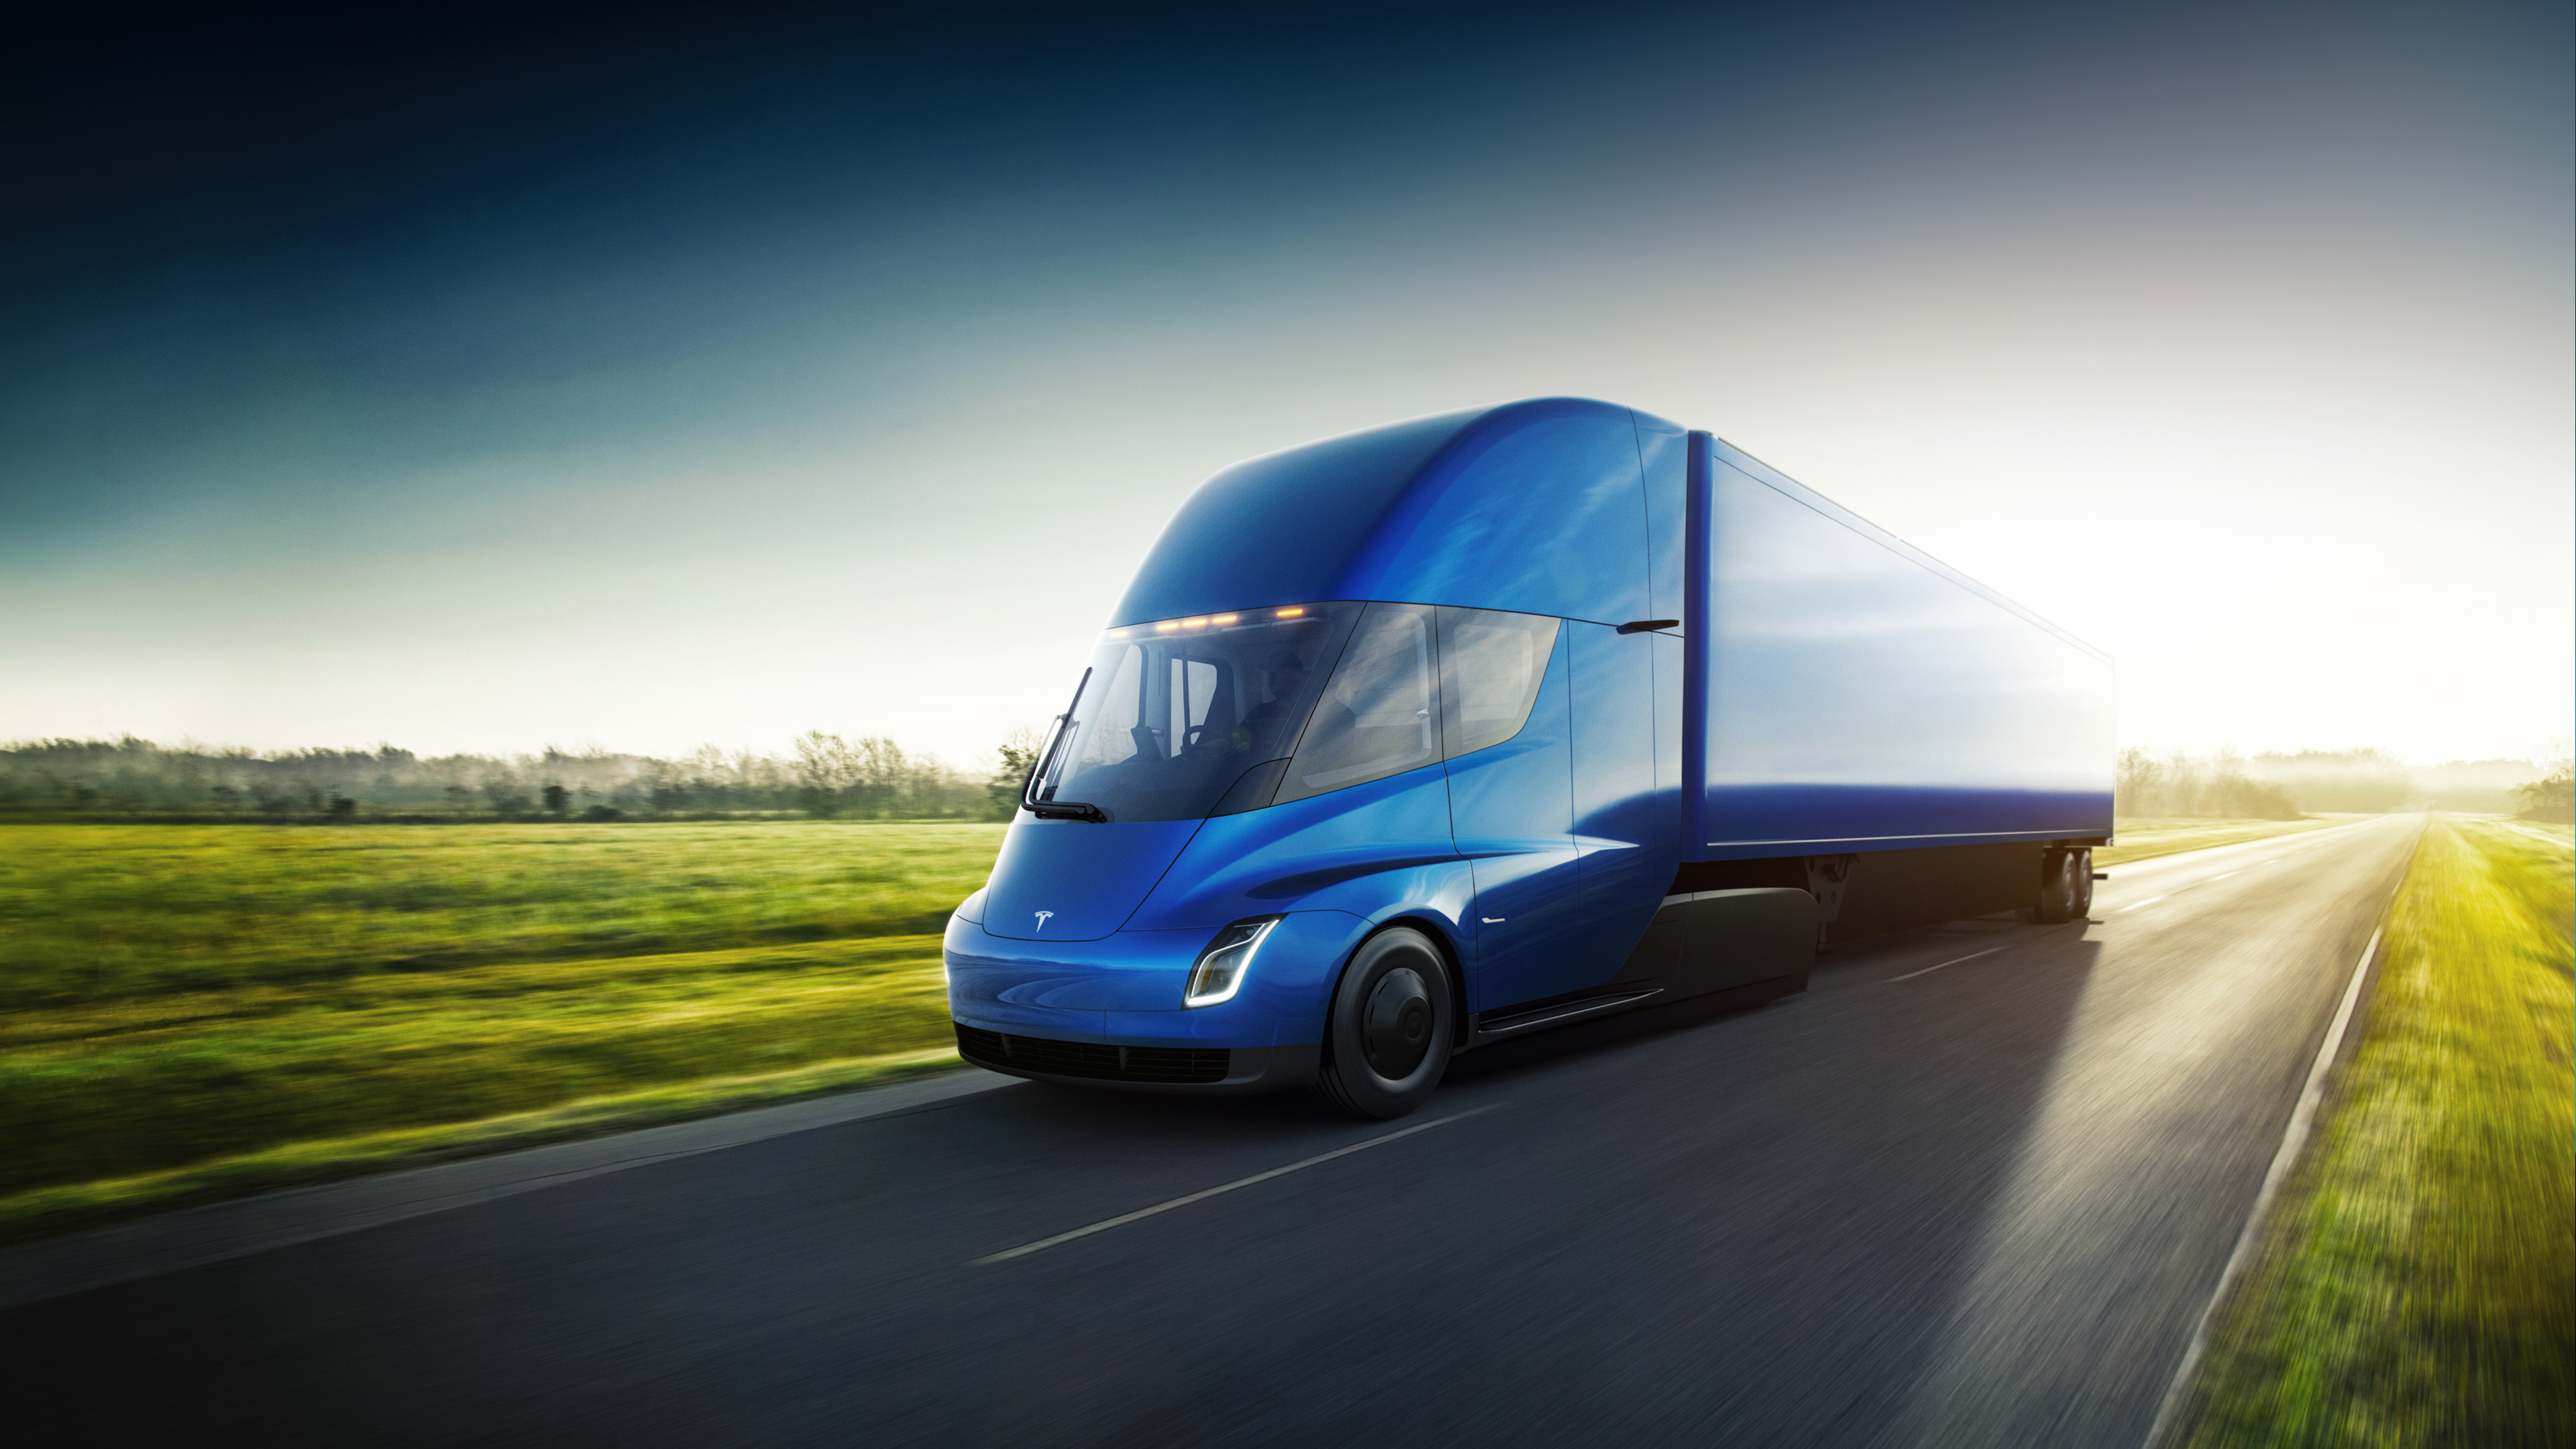 tesla semi unveiled 500 mile range bugatti beating aero